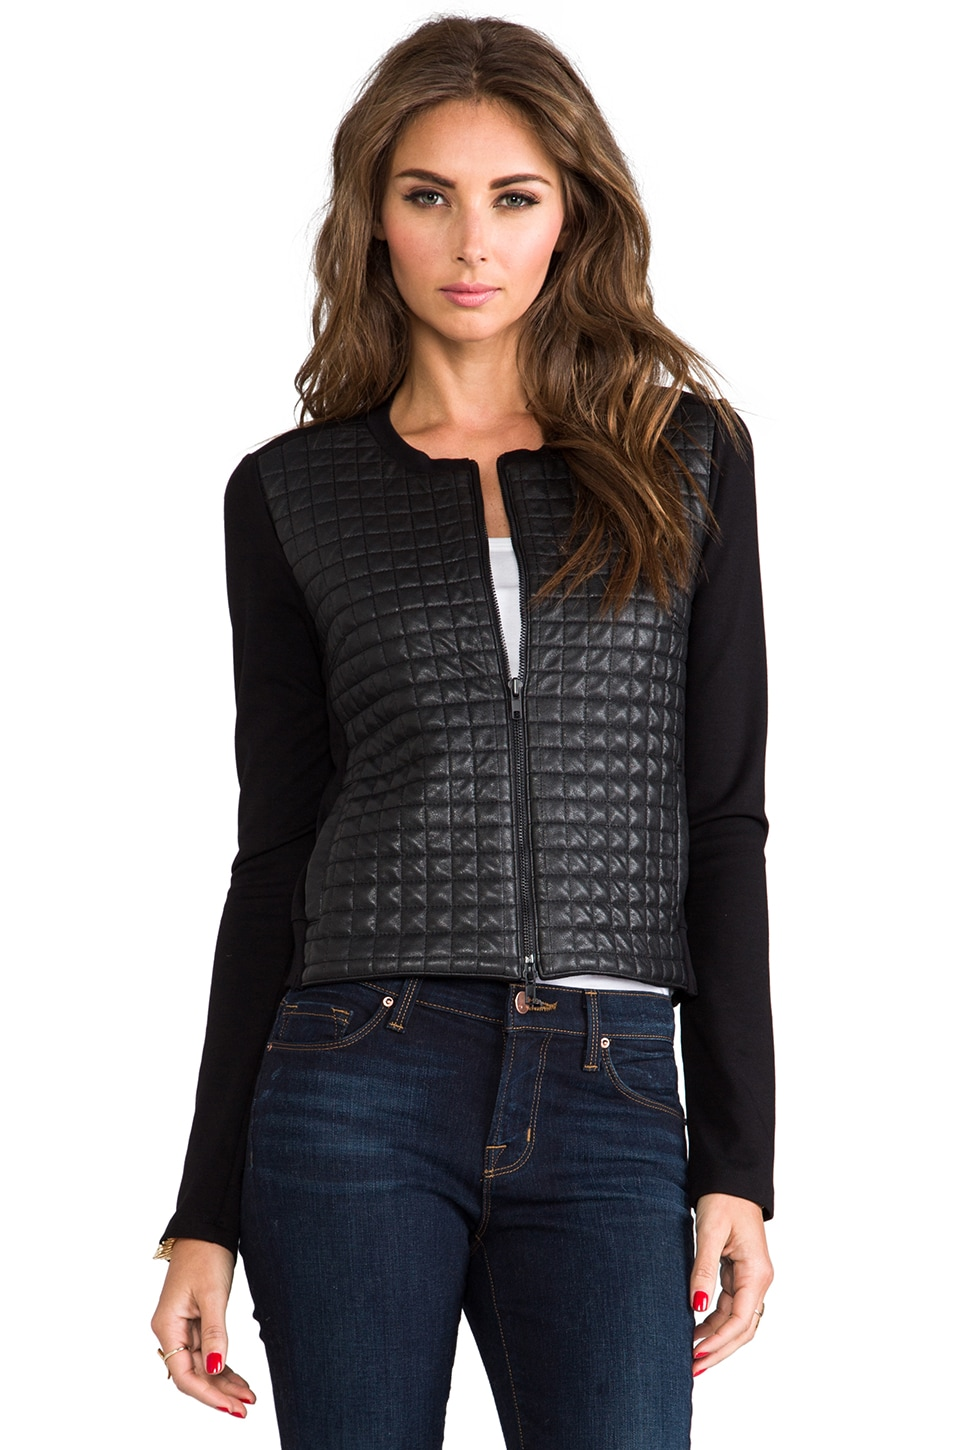 Bailey 44 Off the Grid Quilted Leather Jacked in Black